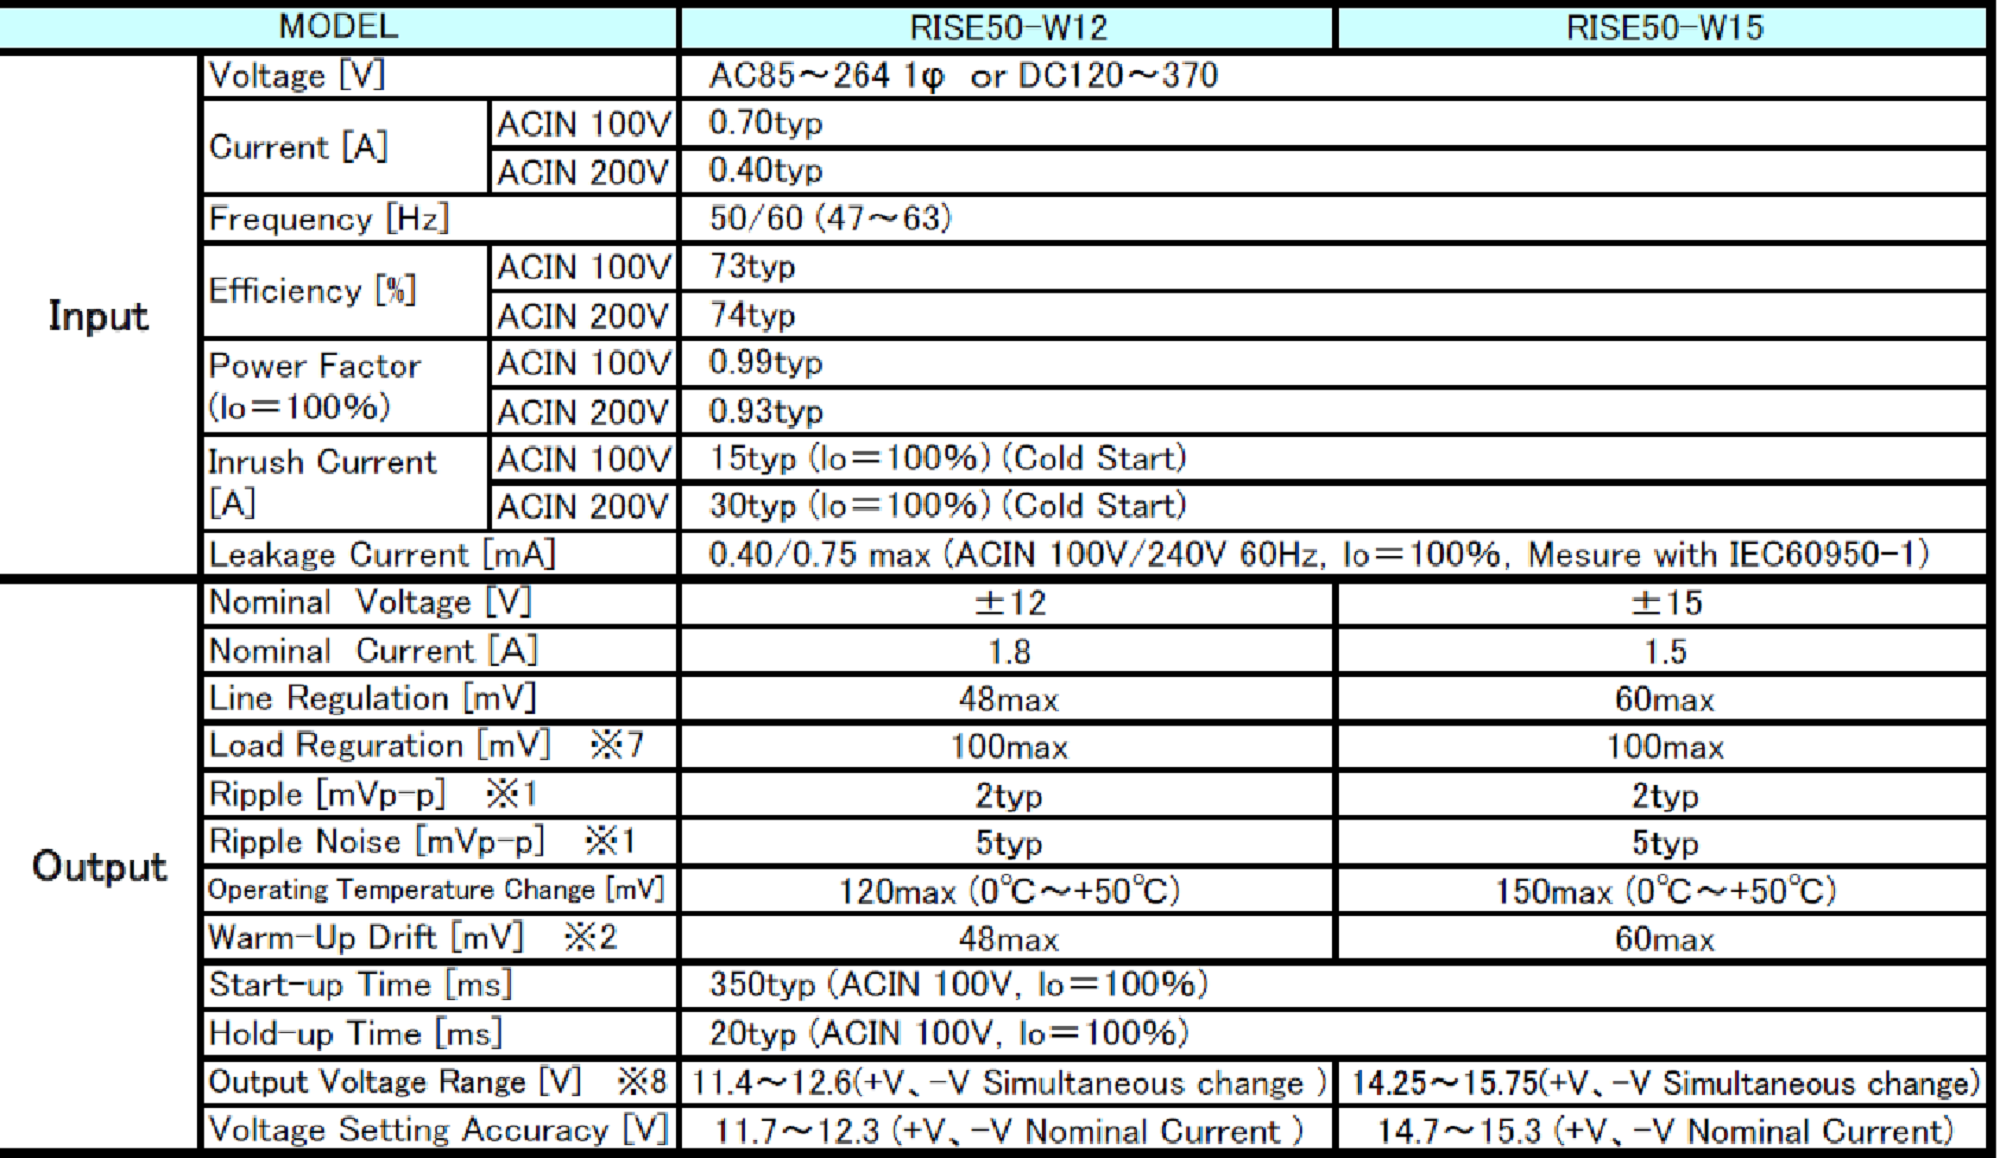 RISE50-W  power supply specs